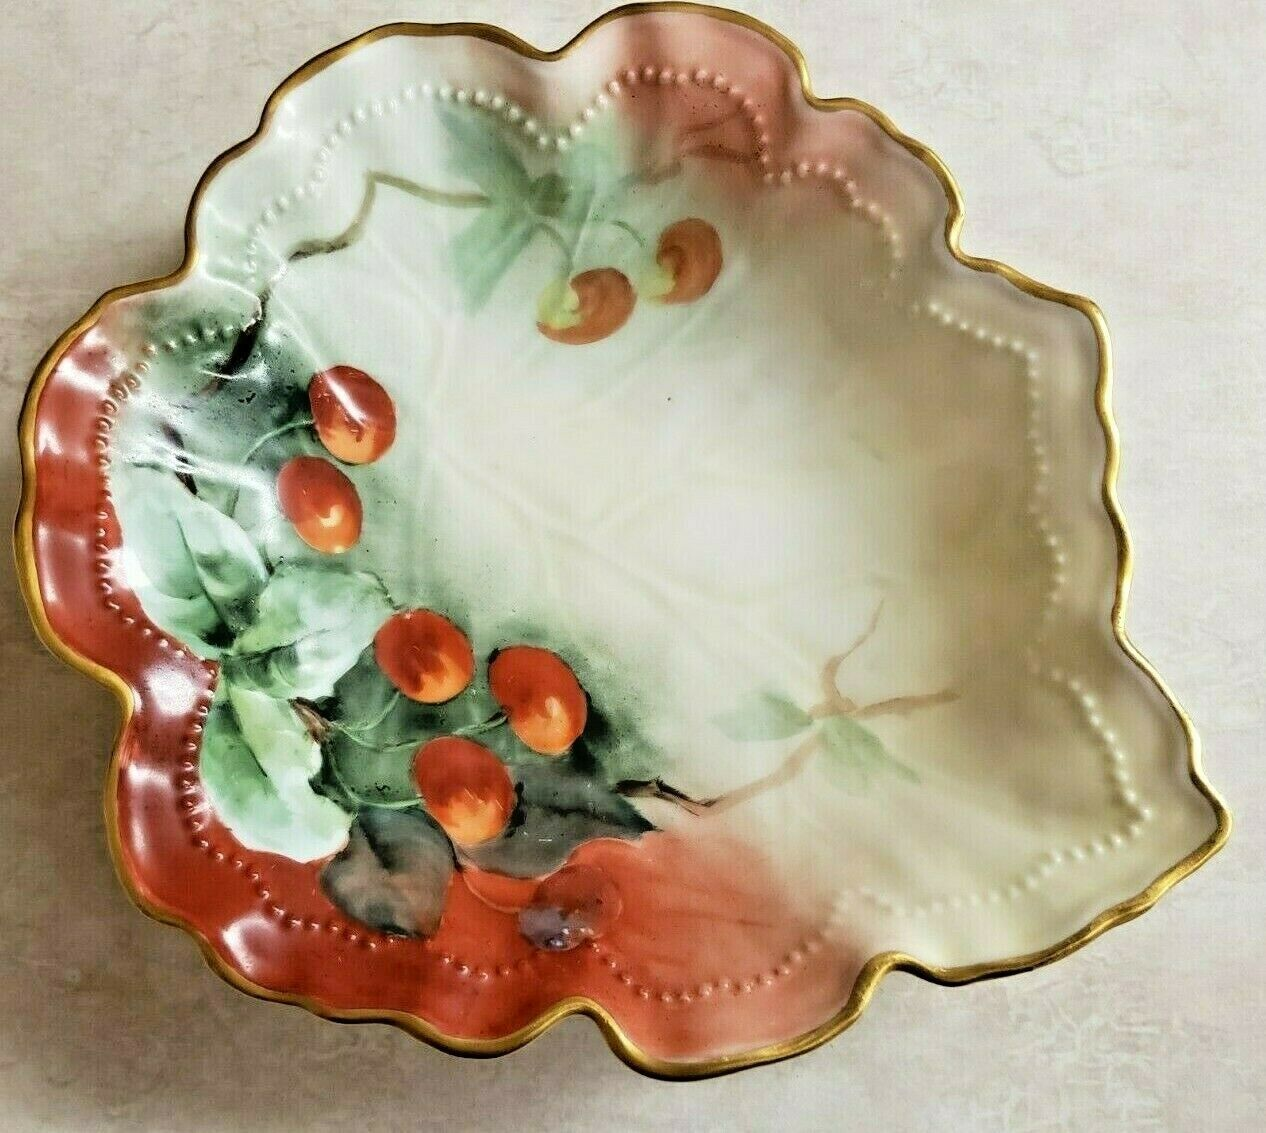 Primary image for La Croix Porcelain Hand Painted Leaf Dish With Gold Trim & Cherries.